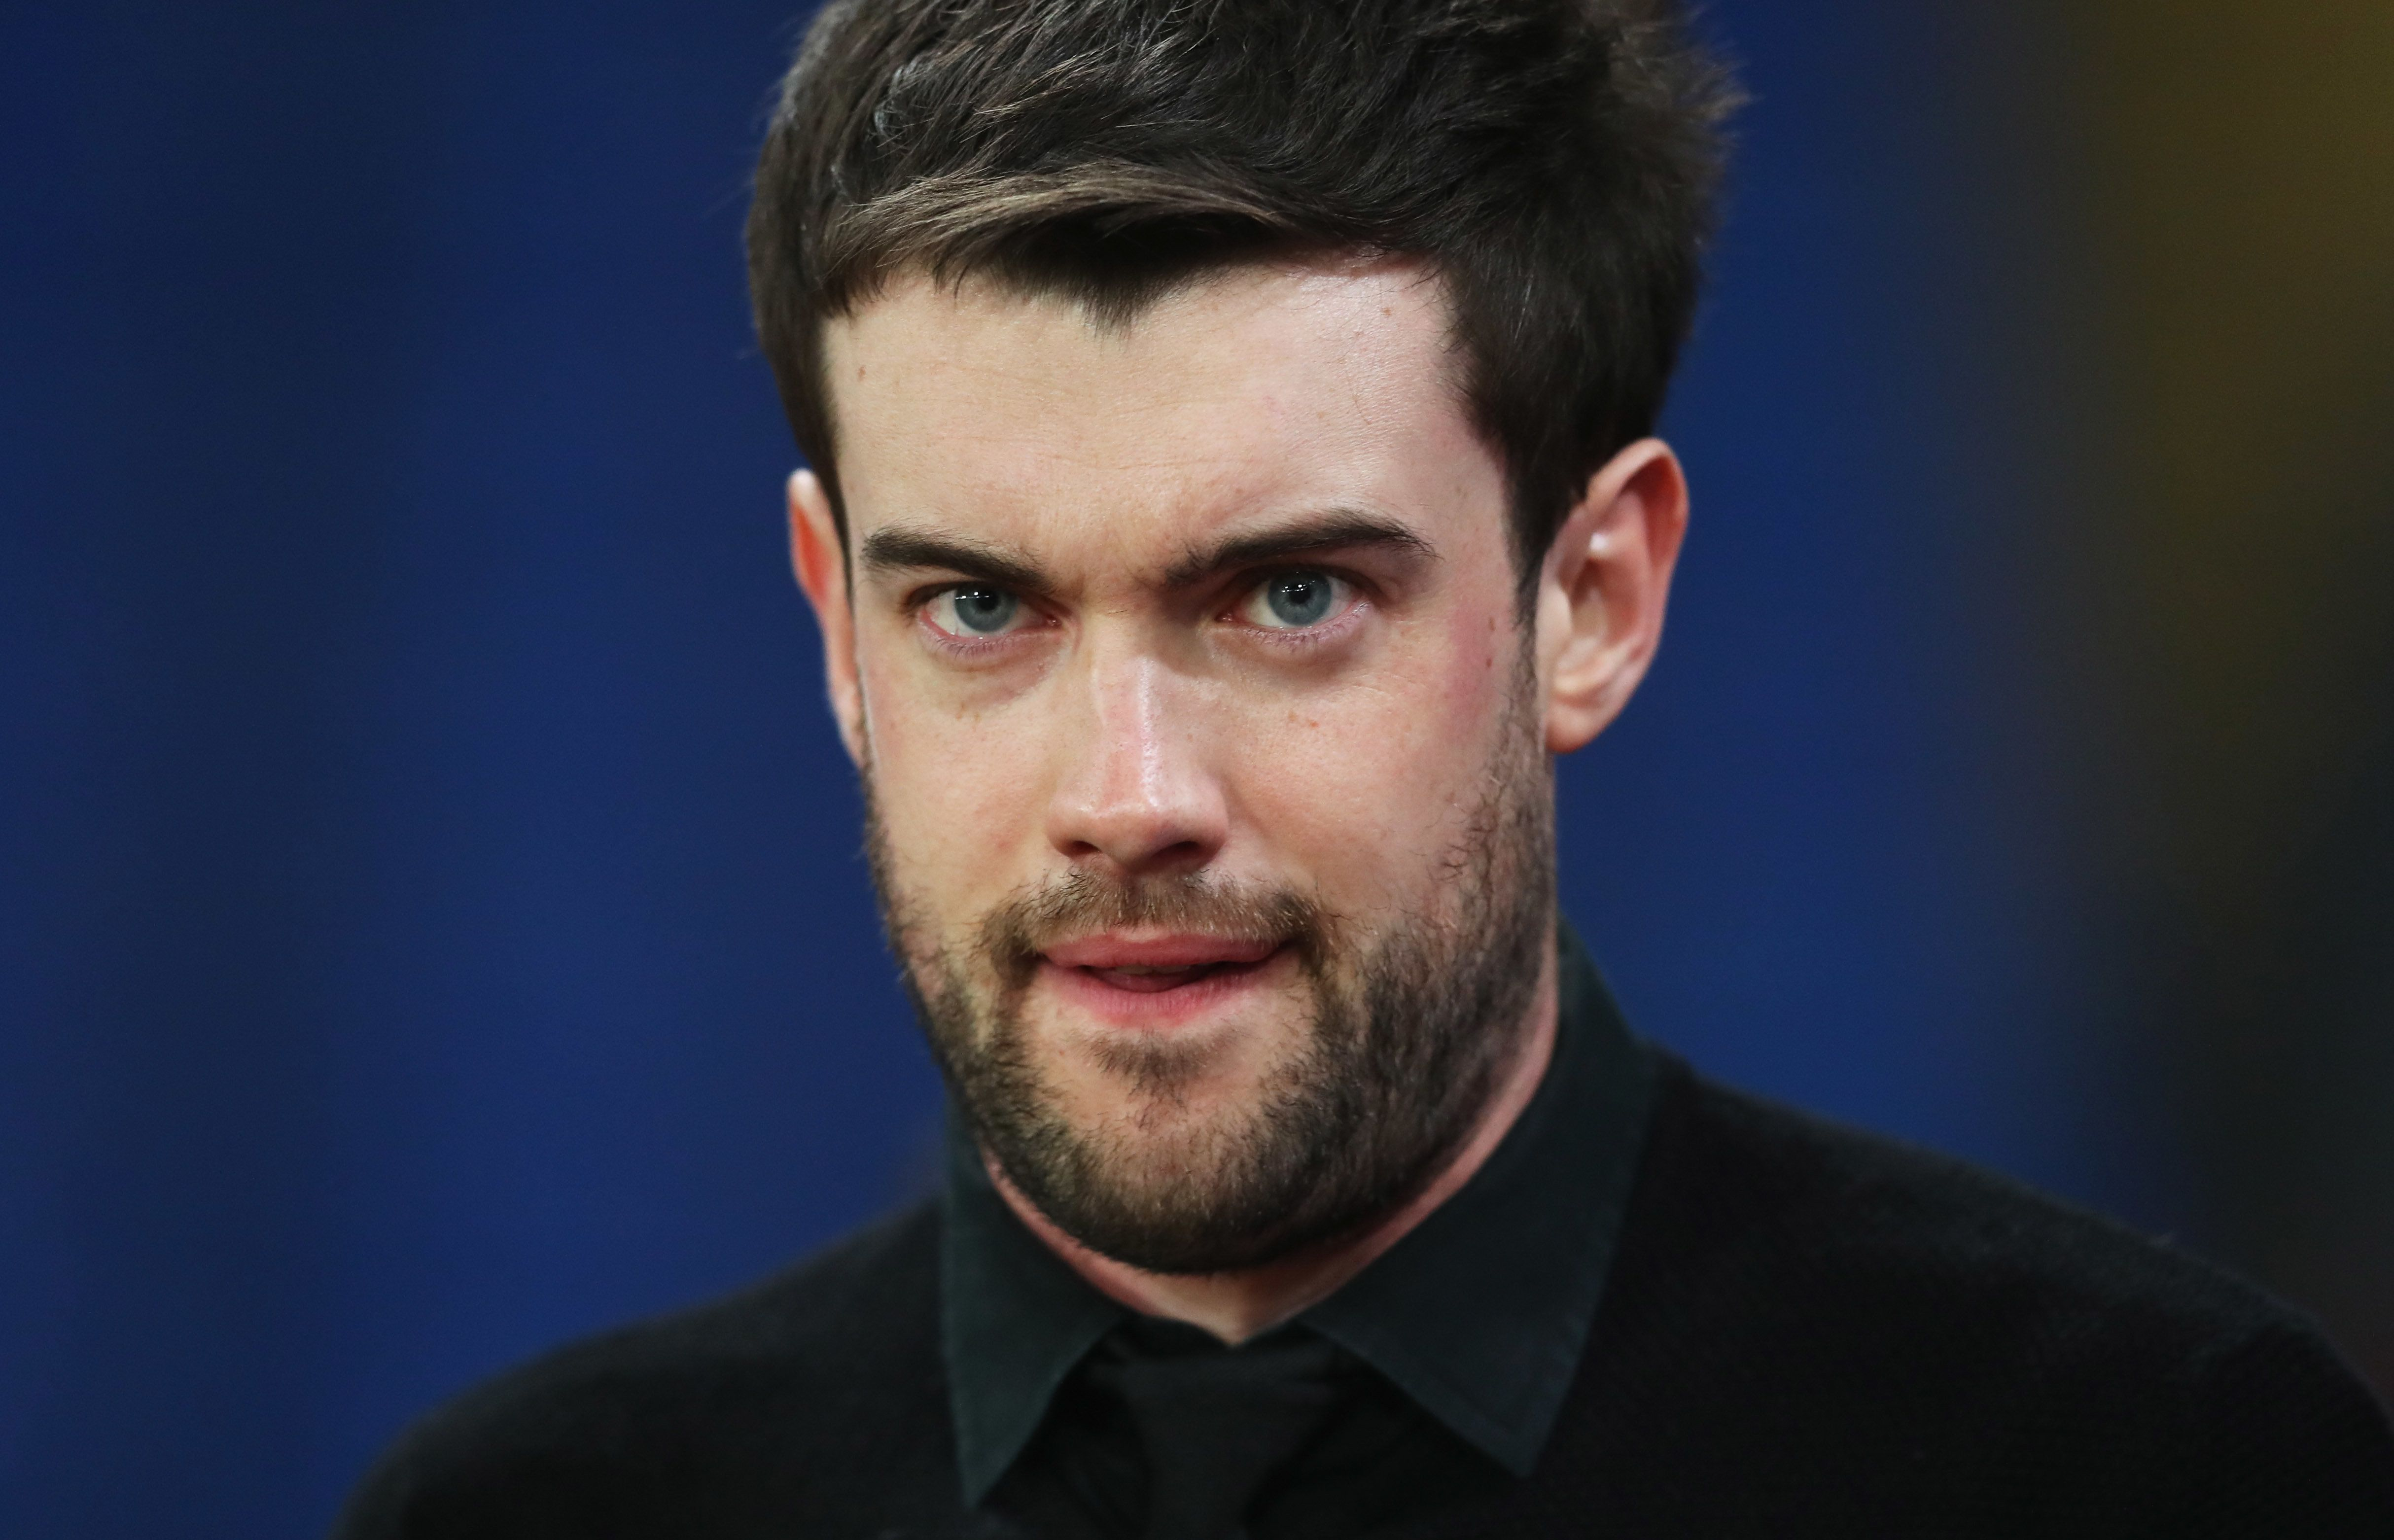 Disney Sparks 'Jungle Cruise' Backlash After Reportedly Casting Jack Whitehall In Gay